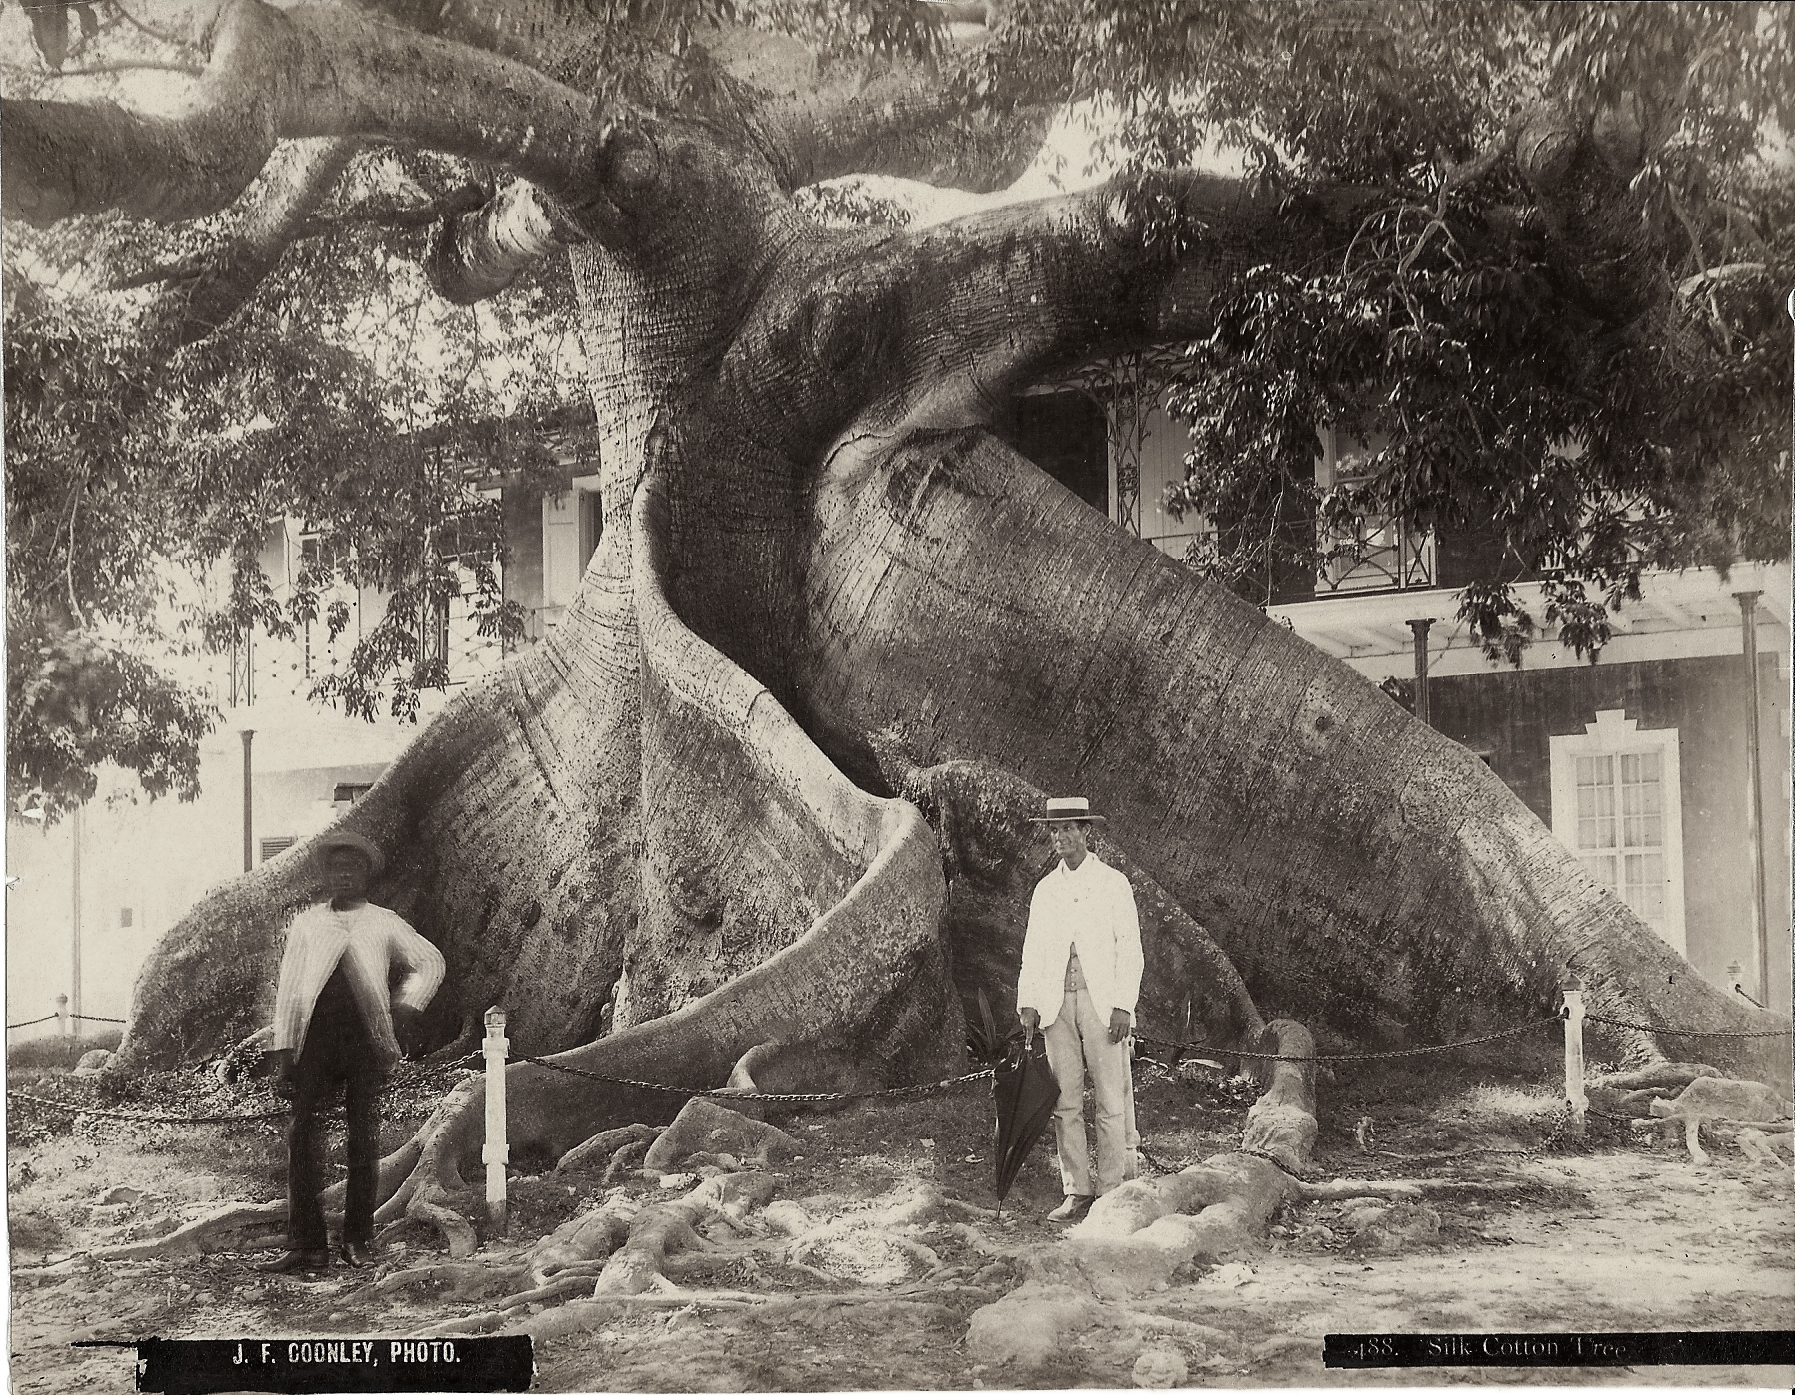 """""""A Ceiba or Silk Cotton Tree"""" (1877-78), Jacob F Coonley, albumen print, 7 x 8. Part of the National Collection, previously owned by R. Brent Malone."""